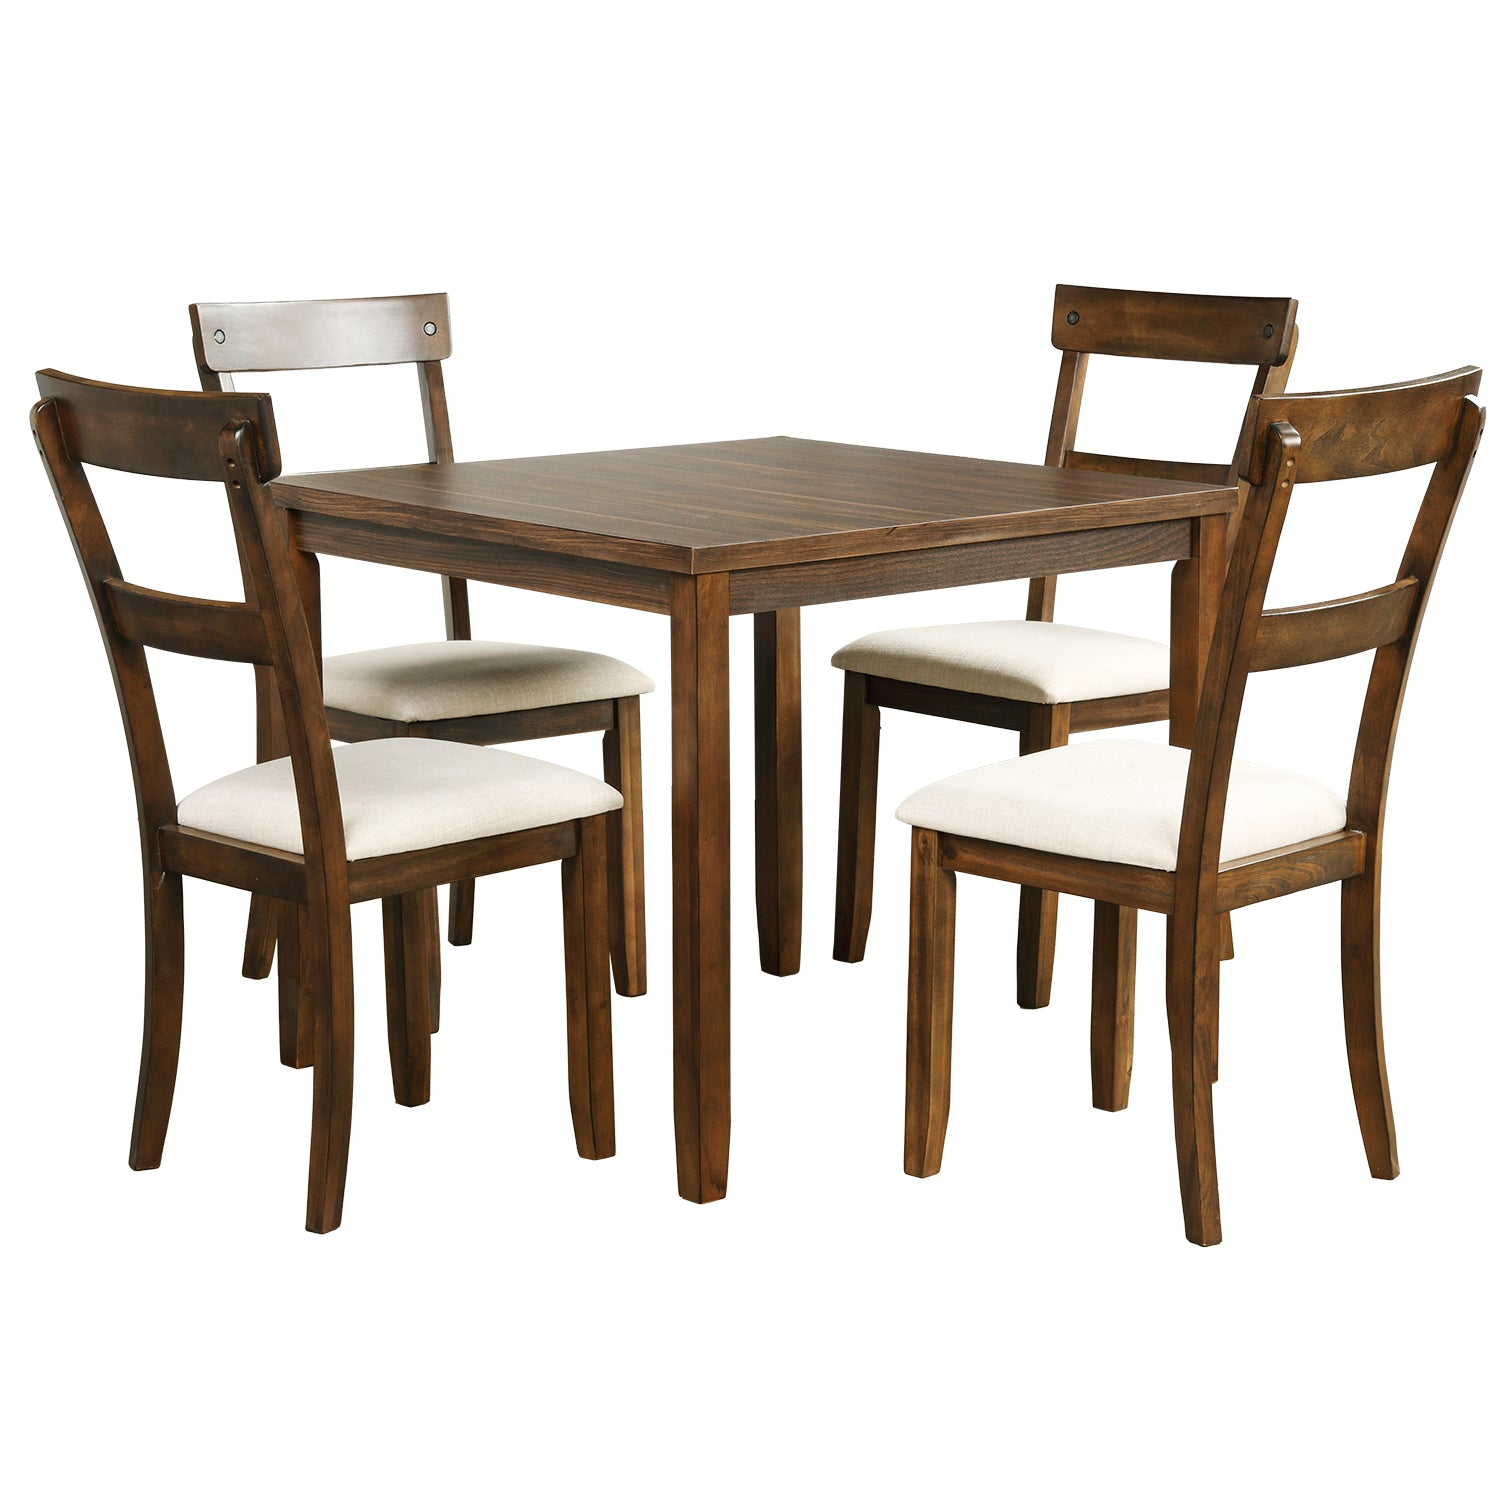 Dark Olive Green 5 Counts - Dining Table Set Industrial Wooden Kitchen Table and 4 Chairs for Dining Room ST000010